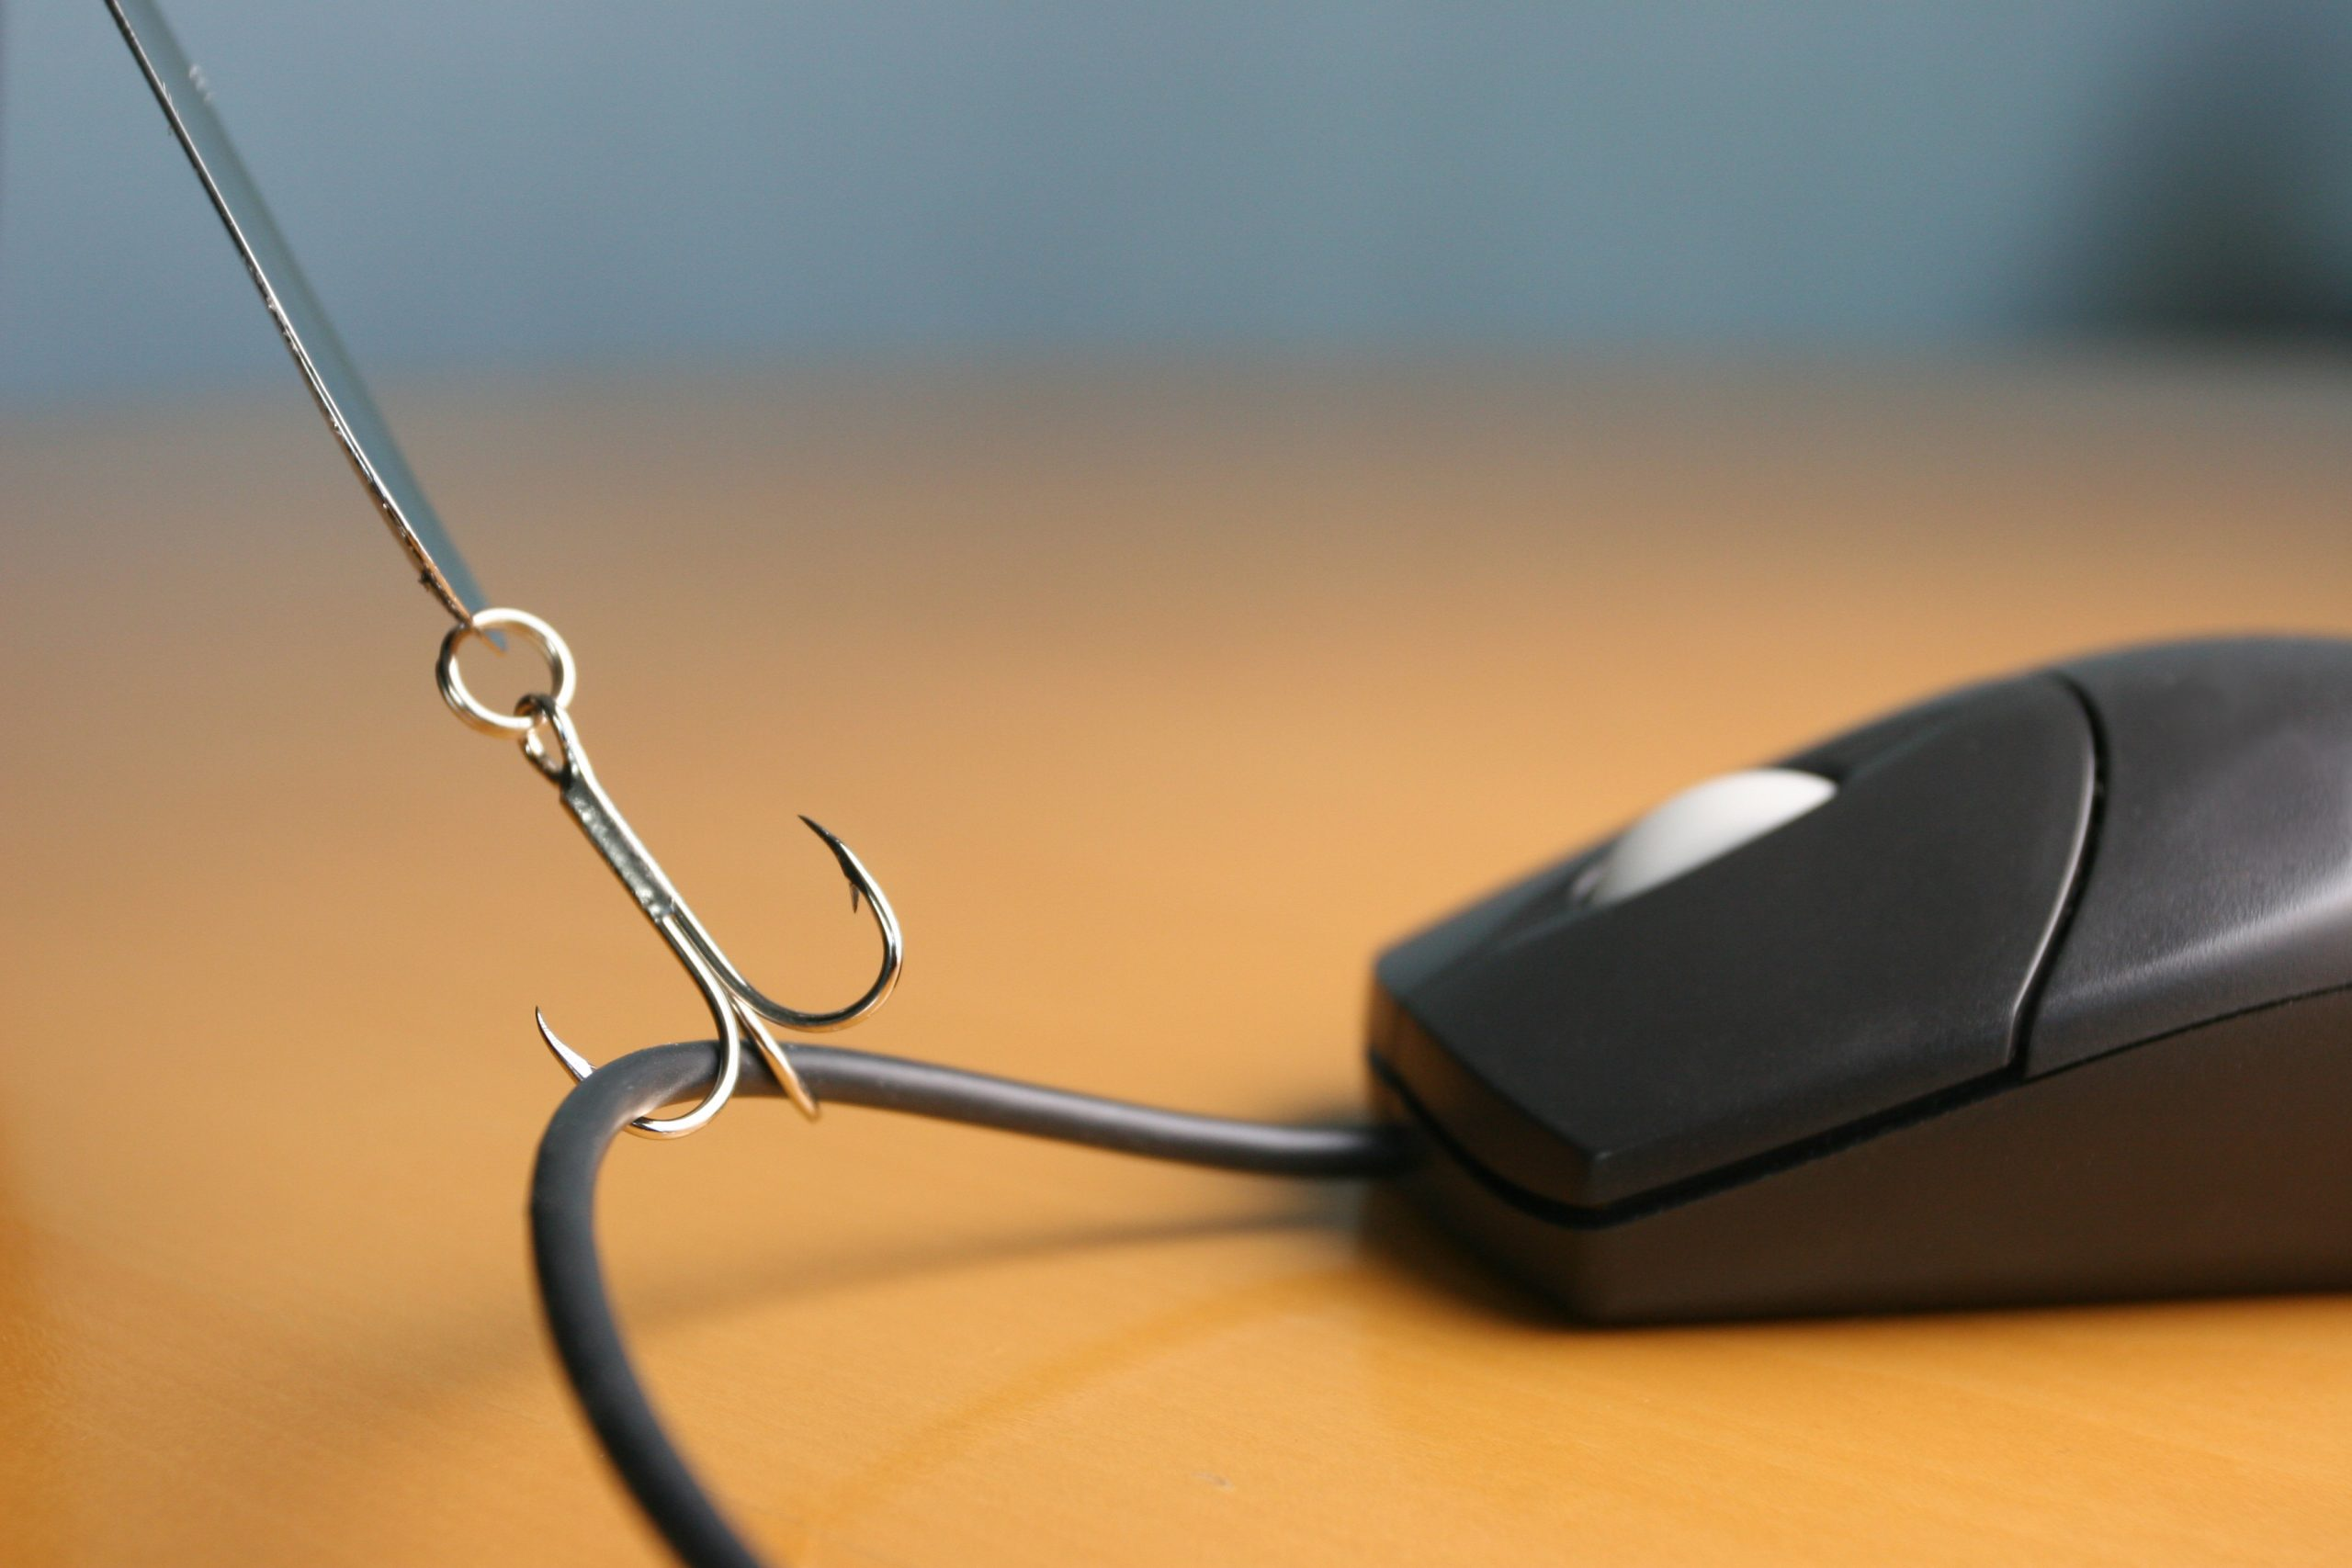 Close up of fishing hook snagging a computer mouse cord on a desktop.